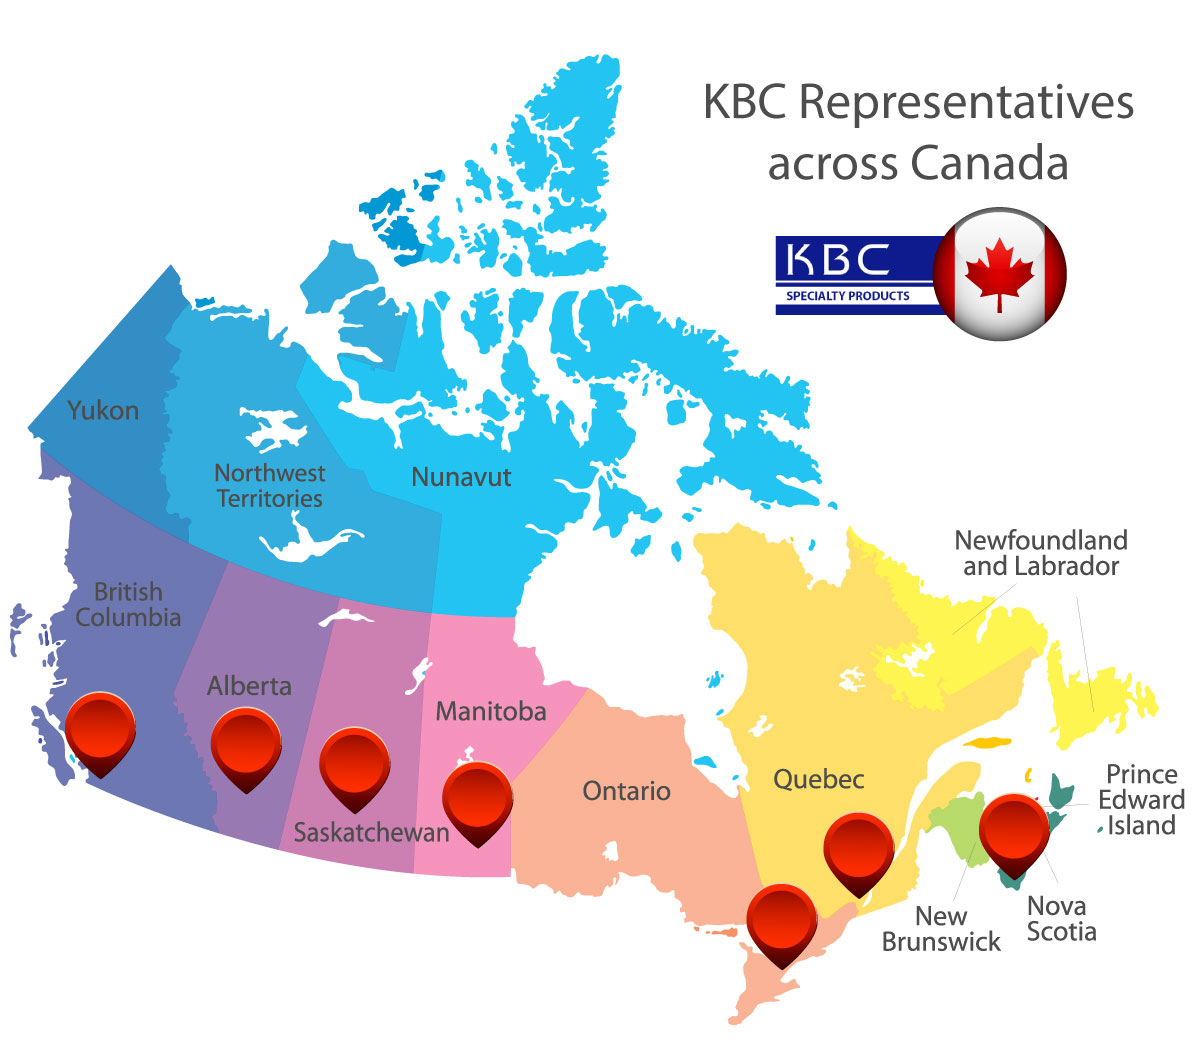 map of KBC Specialty Products service area in Canada